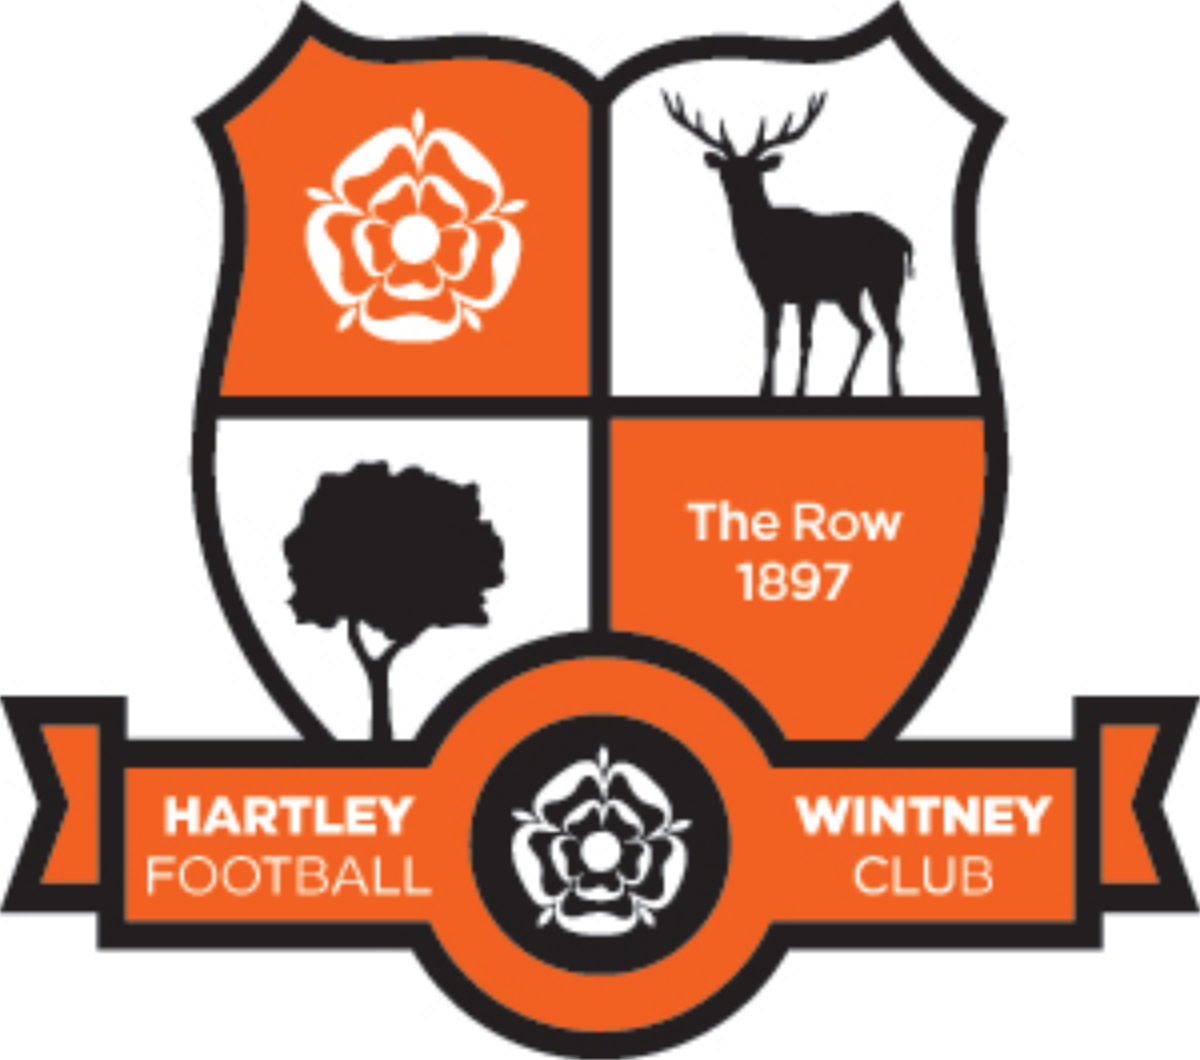 Sorry clipart heartly. Hartley wintney f c